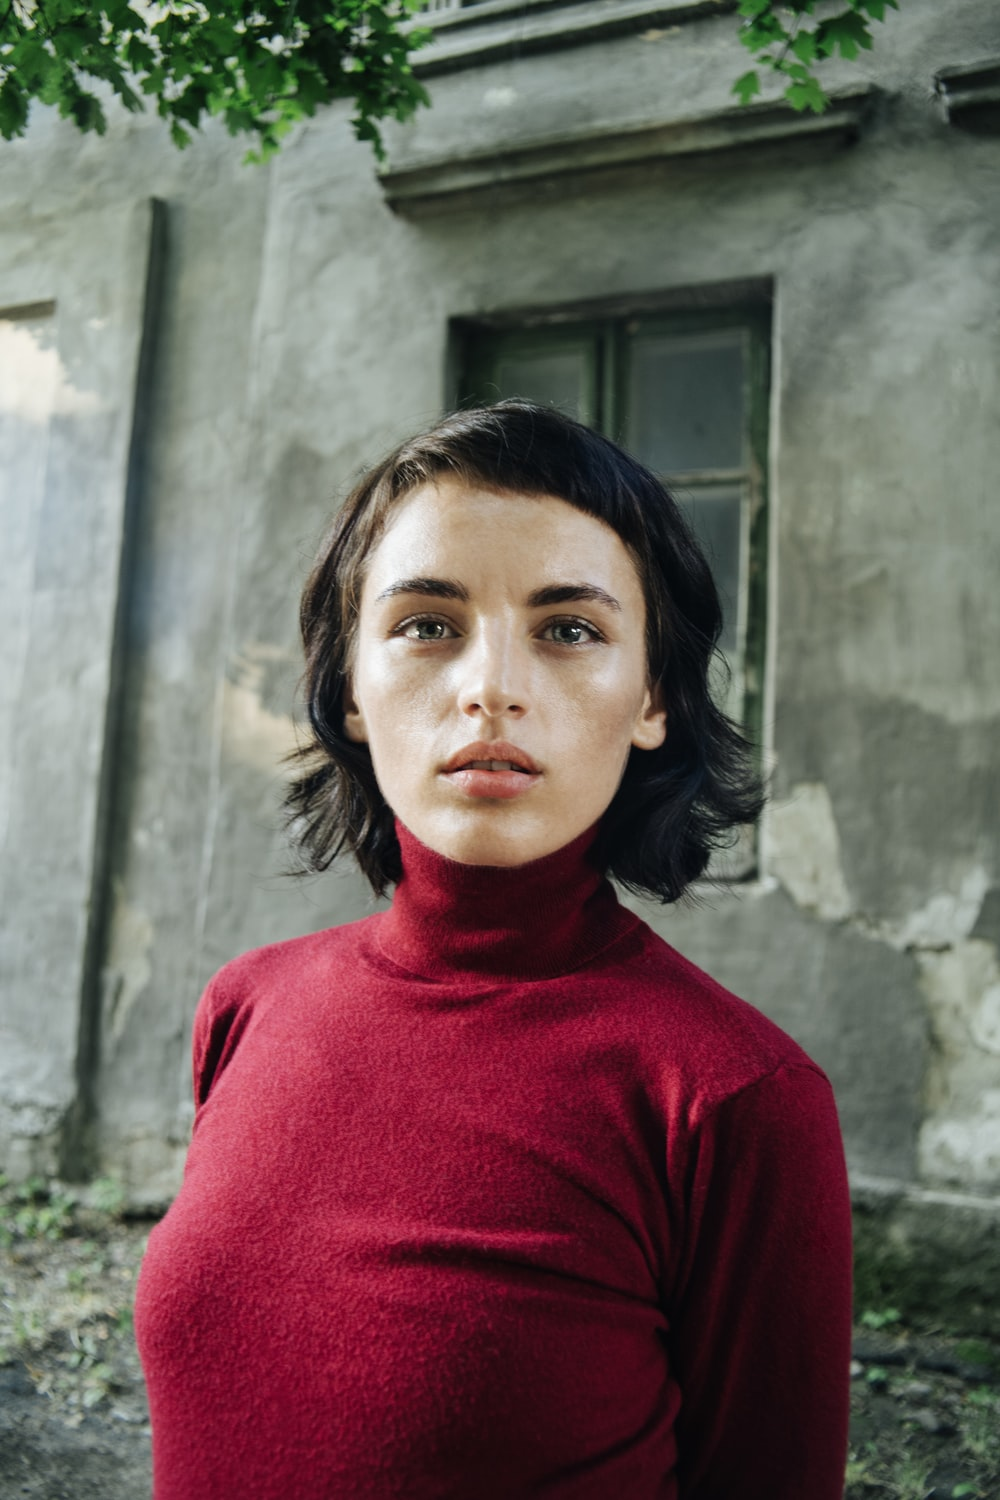 woman in red turtleneck sweater standing beside gray concrete wall